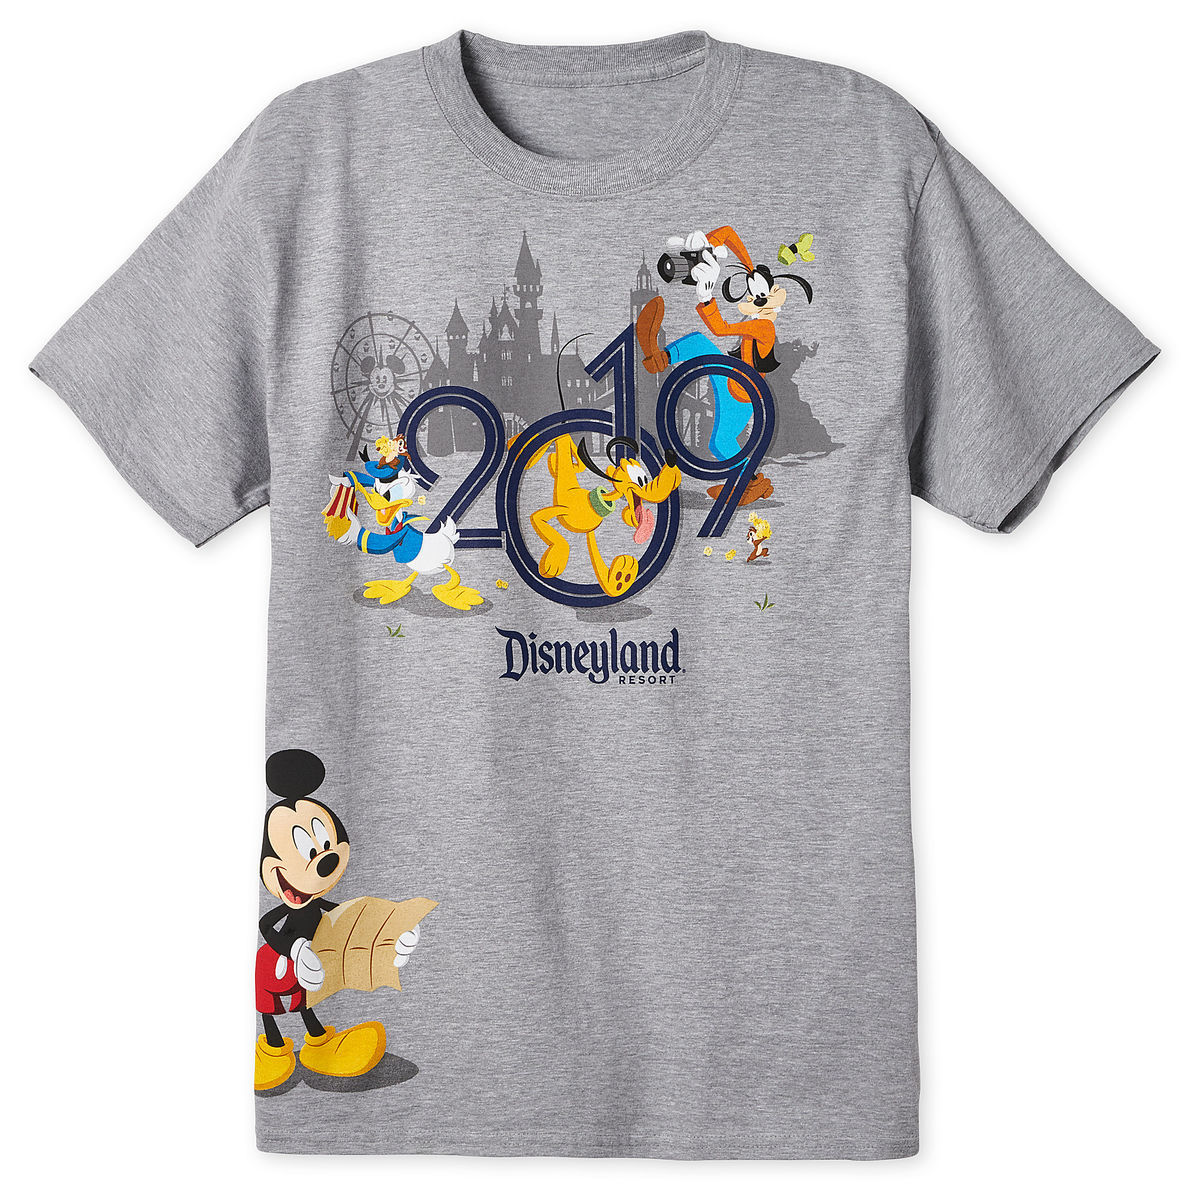 Product Image Of Mickey Mouse And Friends T Shirt For Adults